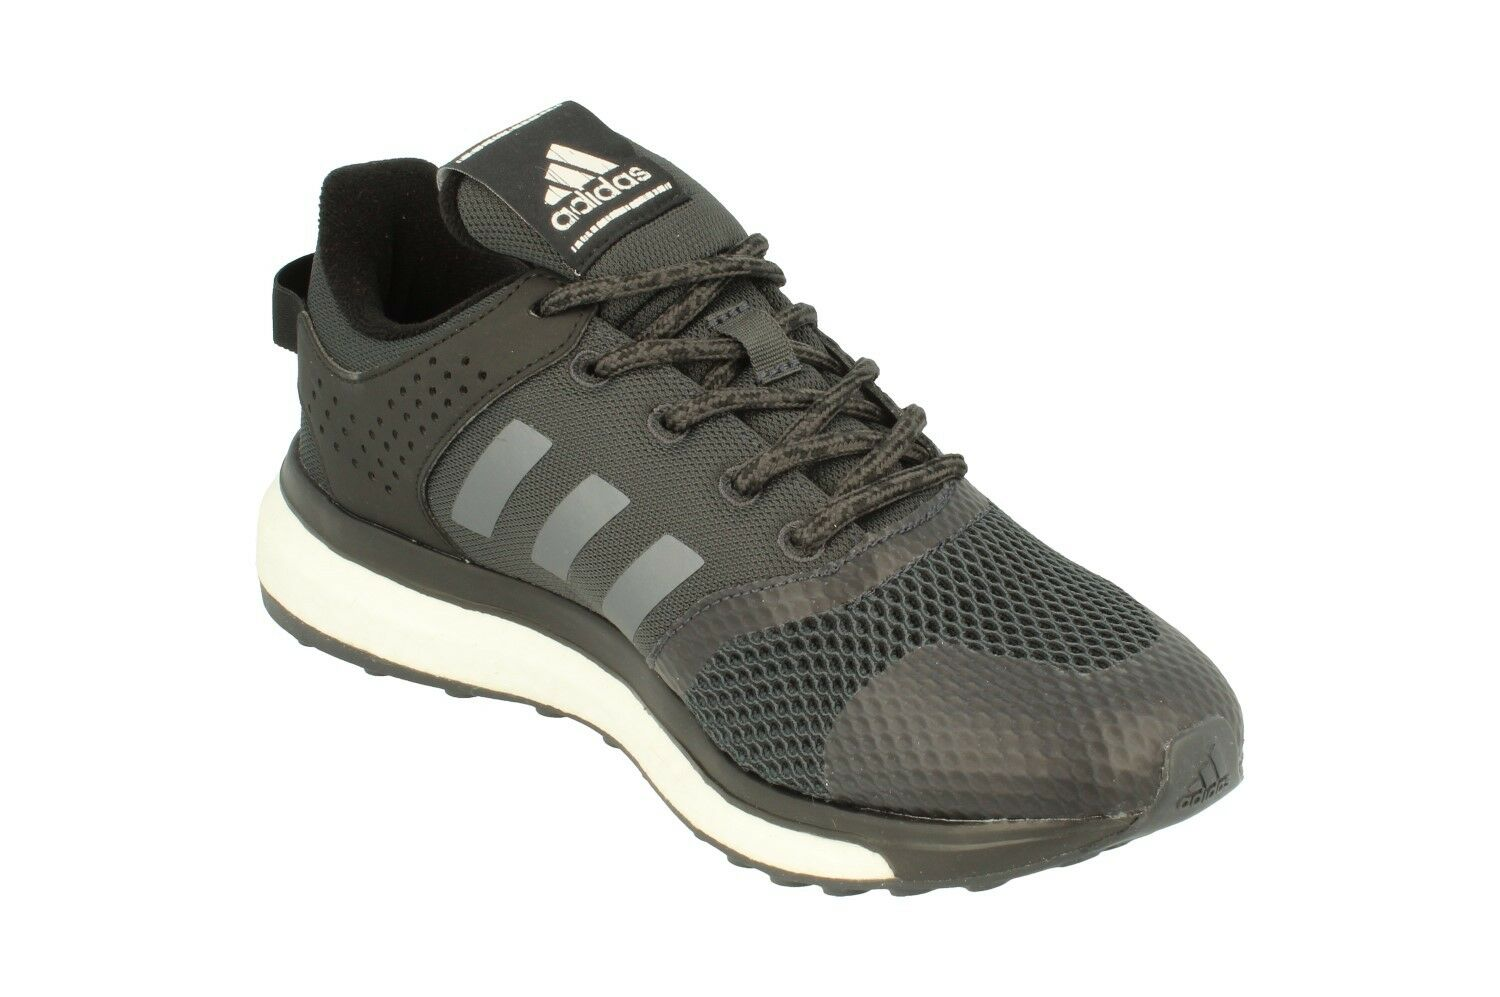 Adidas Response 3 Boost Sneakers Hombre Running Trainers Sneakers Boost BA8336 92bd3a